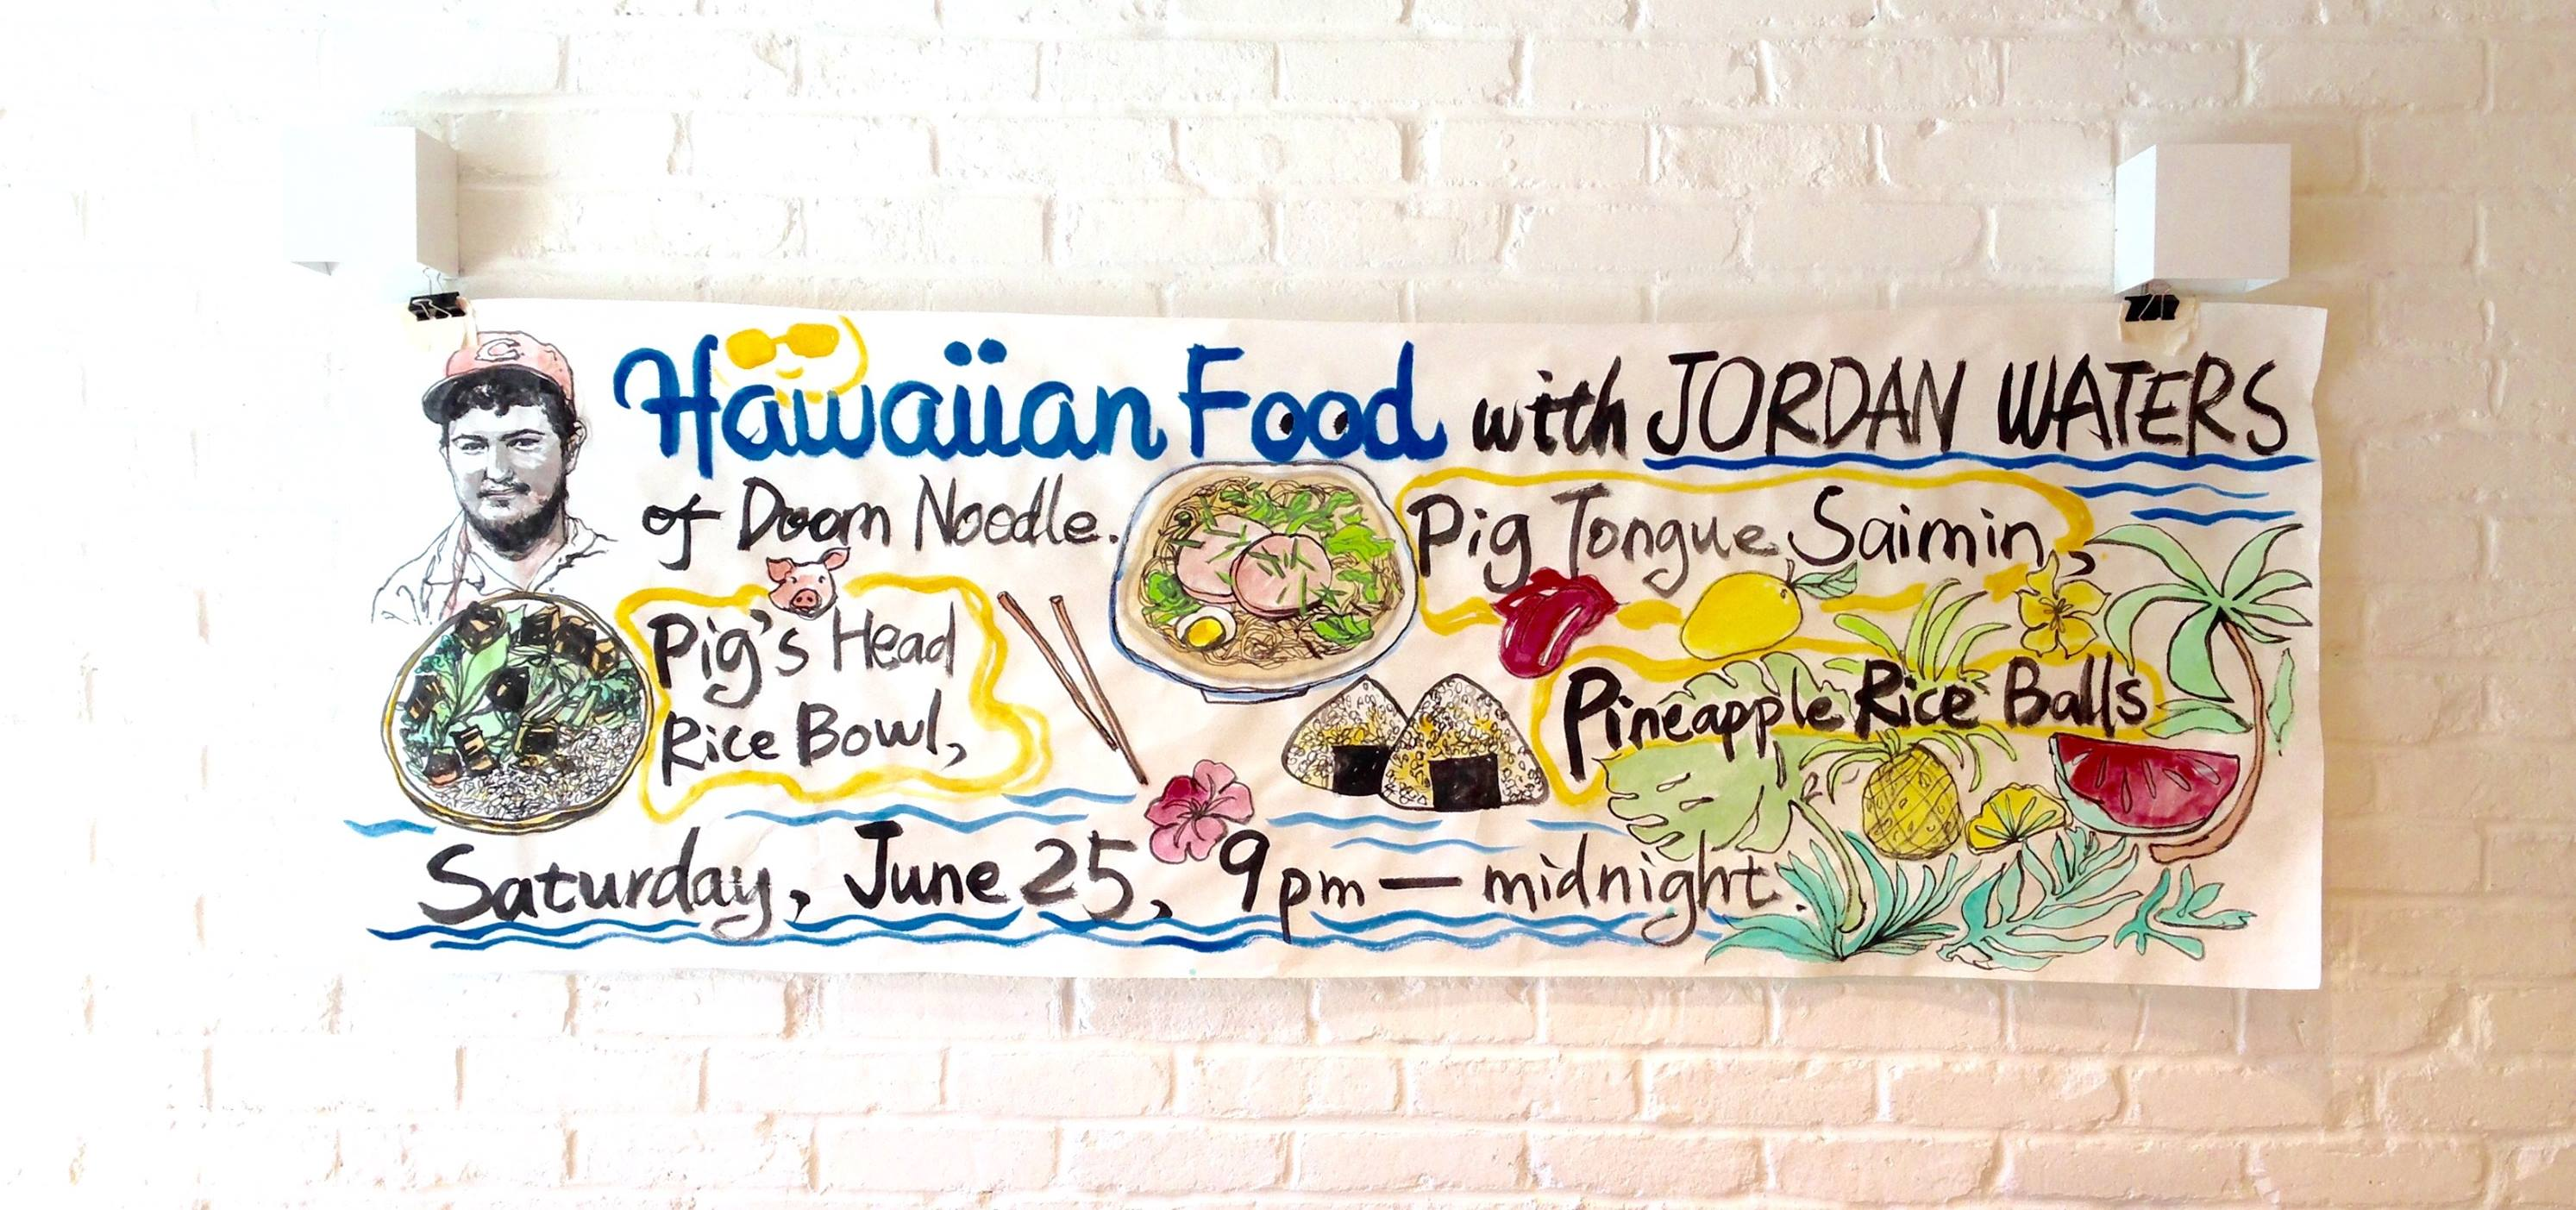 Jordan Waters Junzi Kitchen Hawaiian Acorn Pork Food